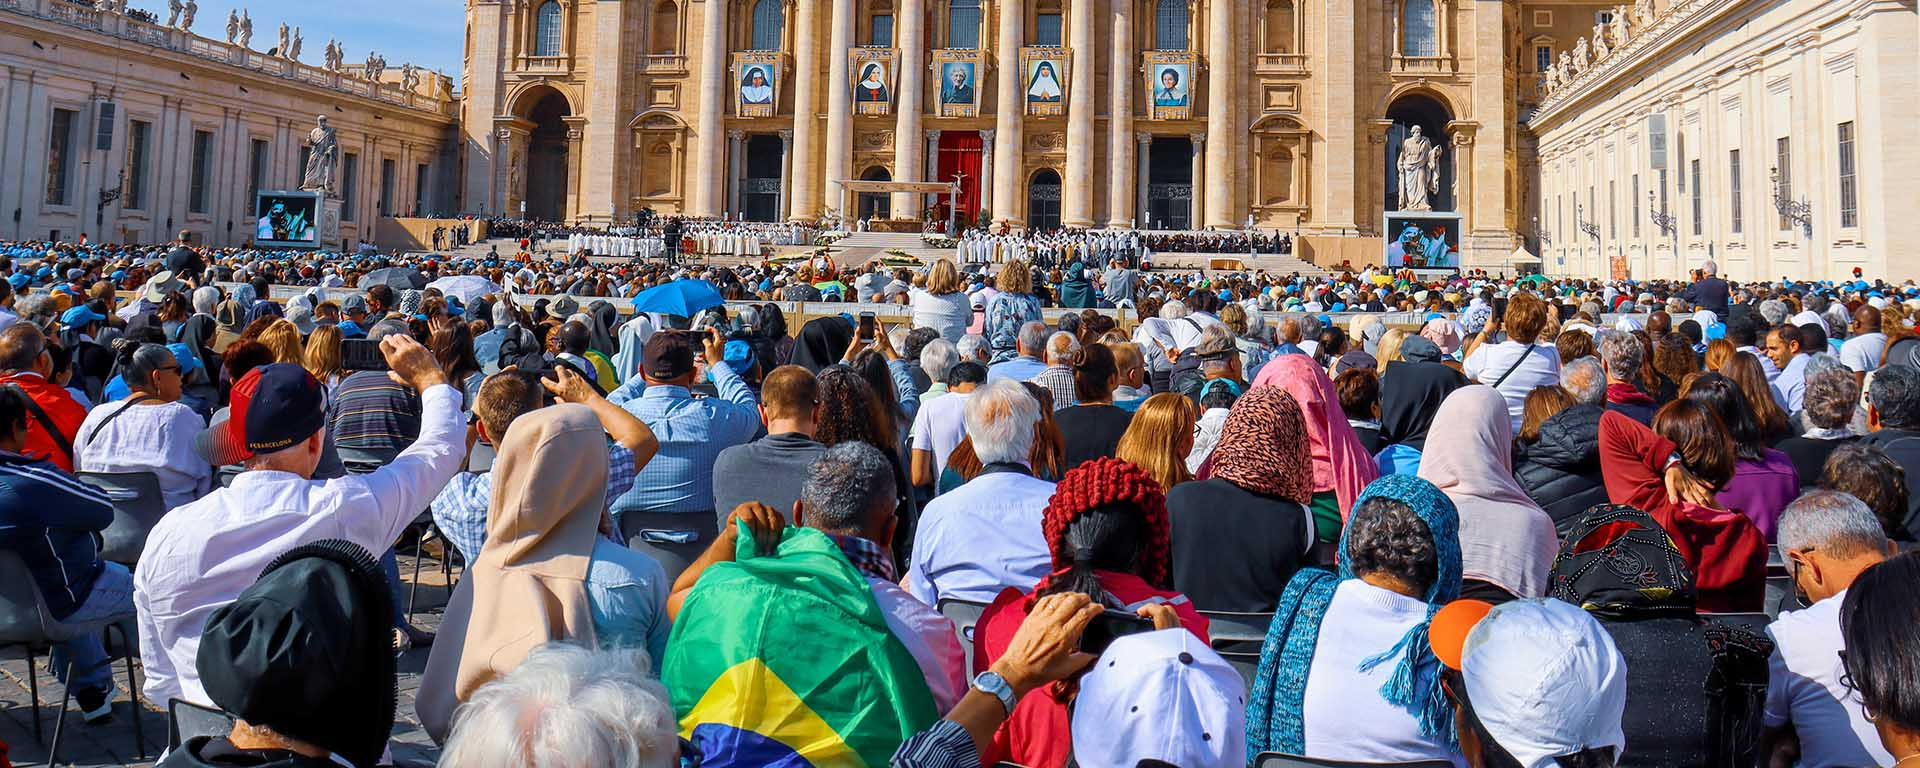 A large crowd of Catholic people pray and hold one another's shoulders